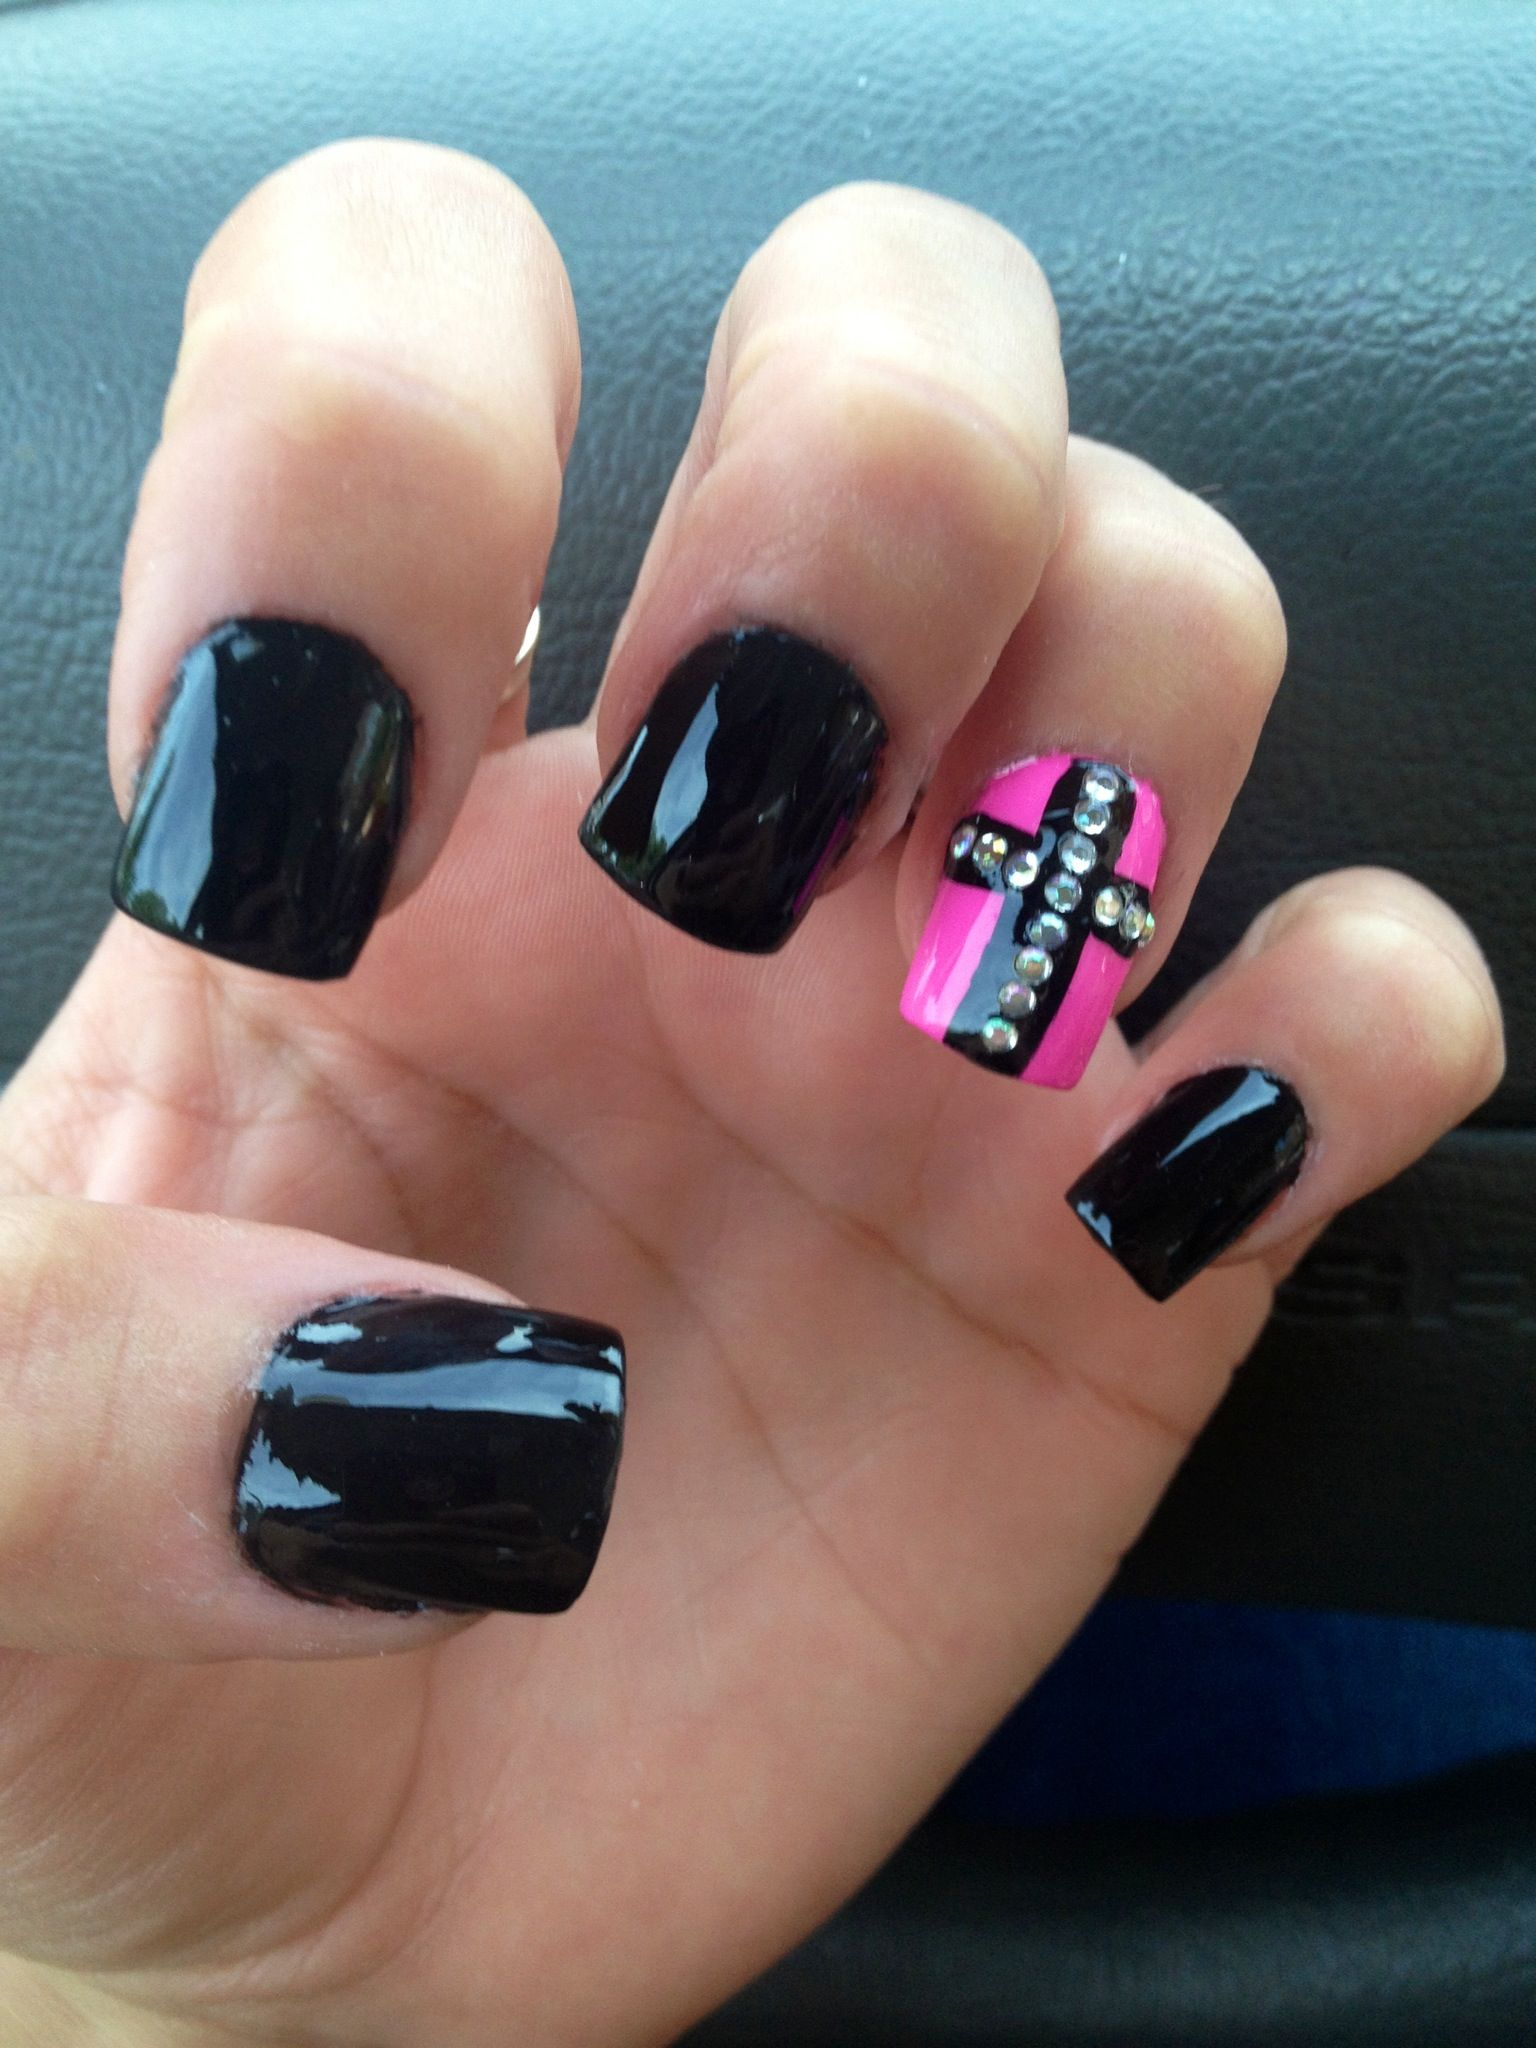 Cross nails black loveee!! lets make the polish with the cross on it ...